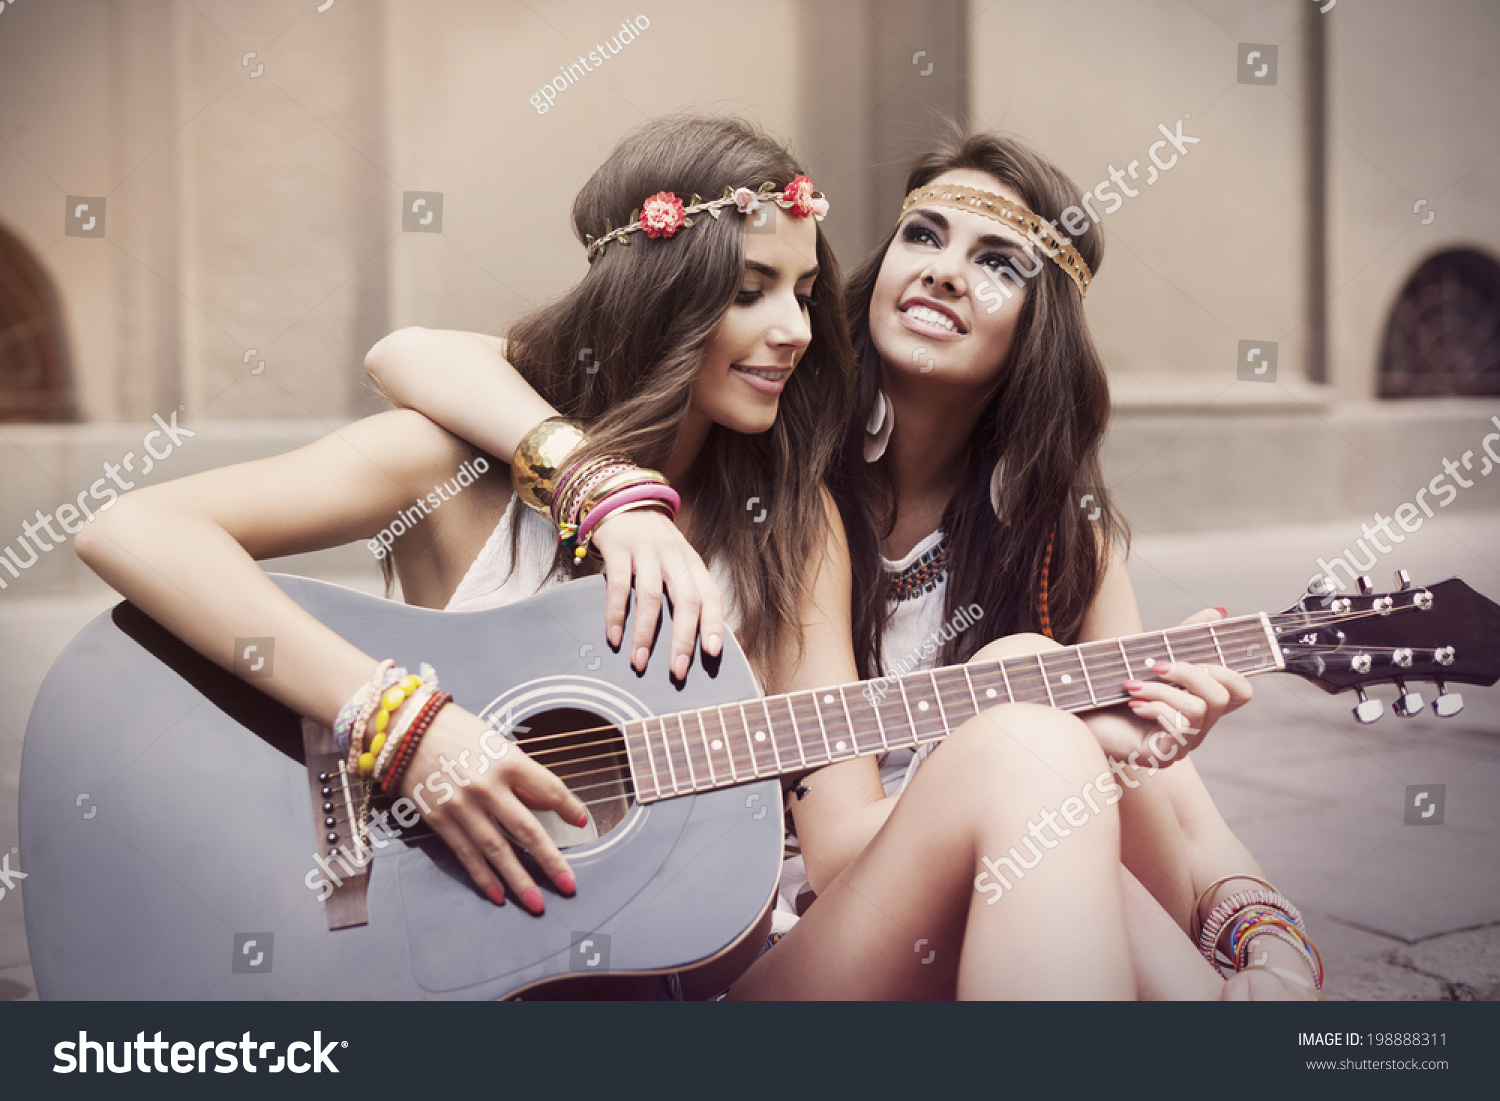 Girls stylish with guitar exclusive photo